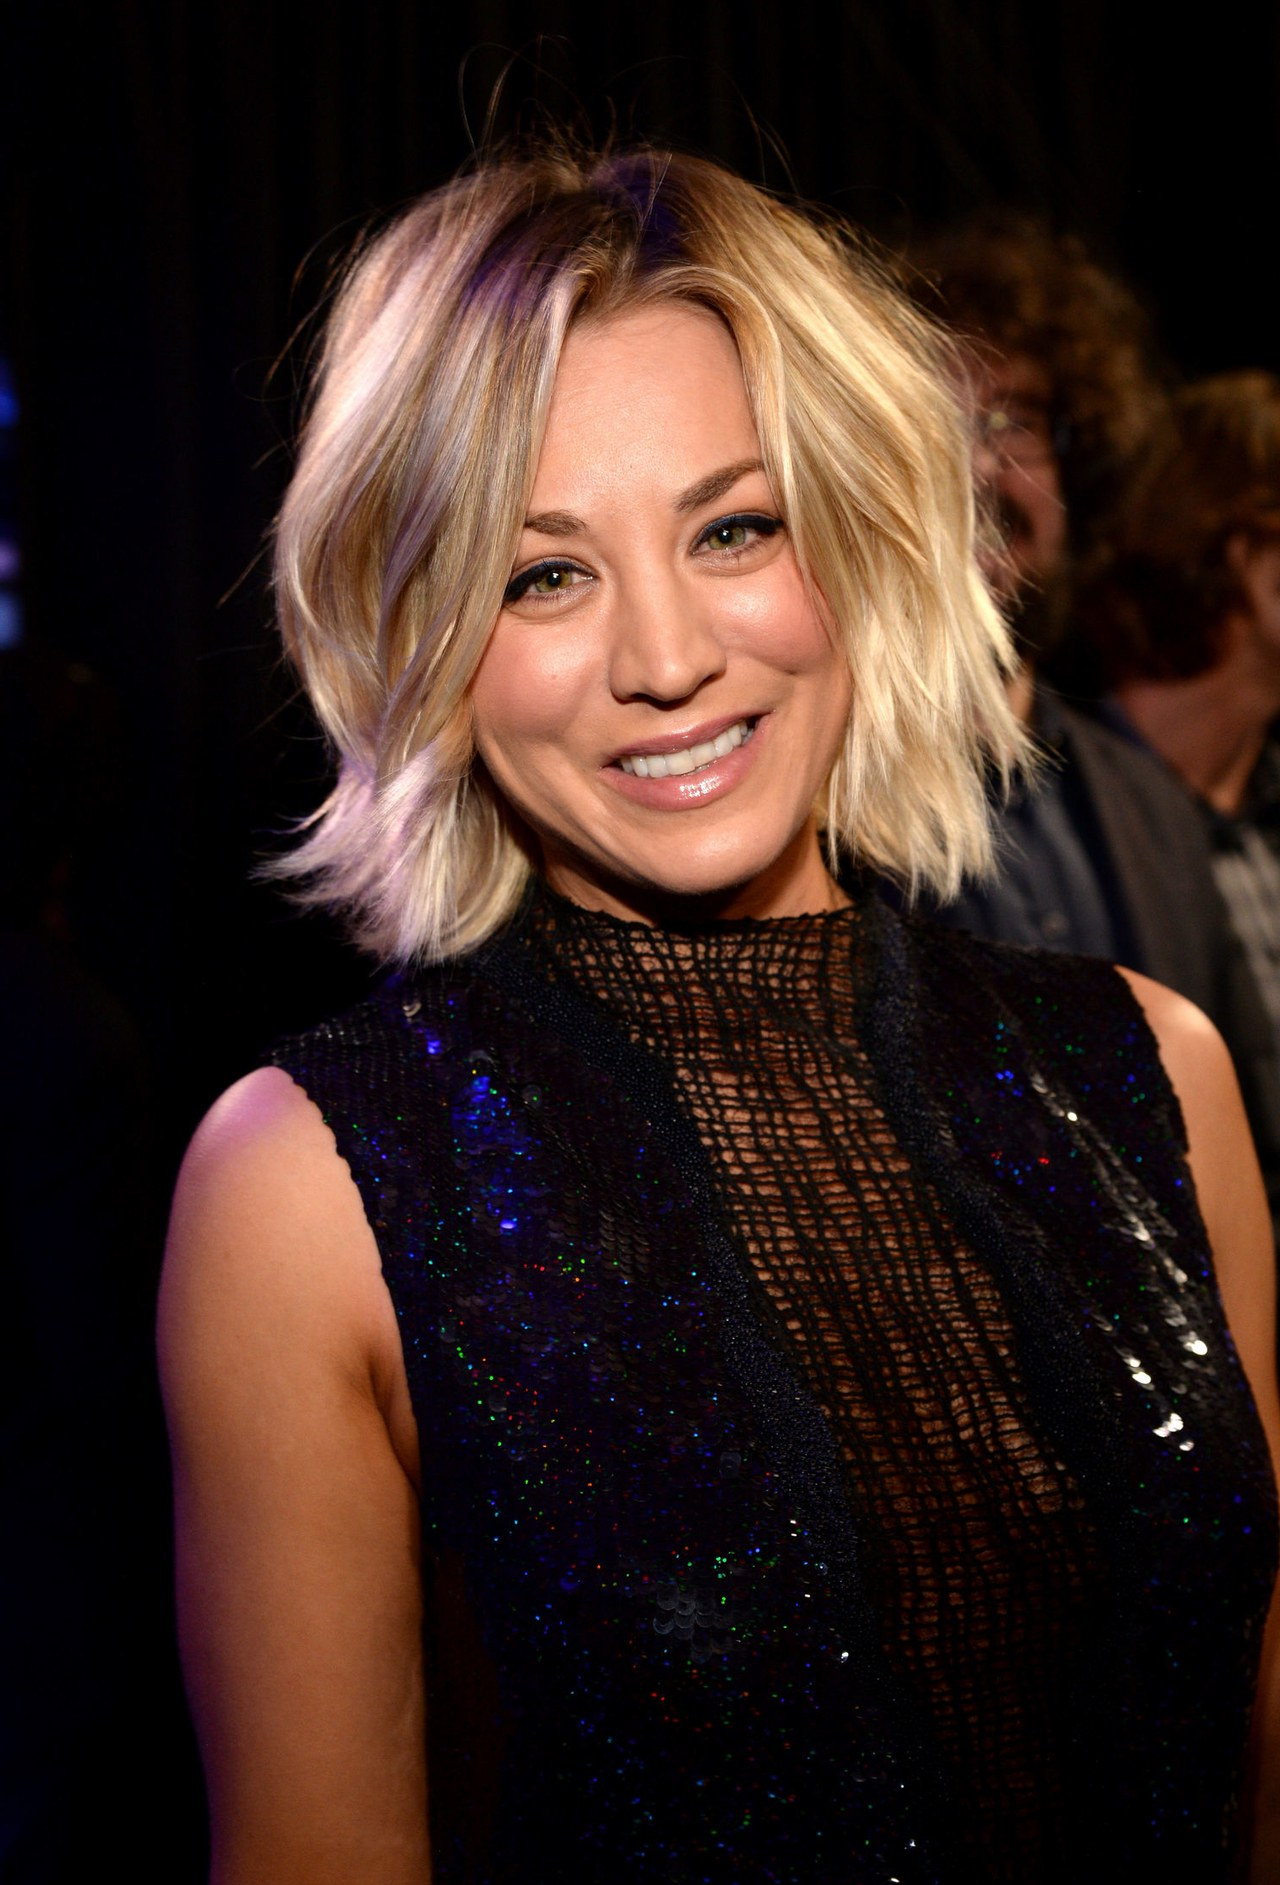 Kaley Cuoco Hair Evolution: See How She Grew Out Her Pixie | Glamour Inside Kaley Cuoco Short Hairstyles (View 7 of 25)